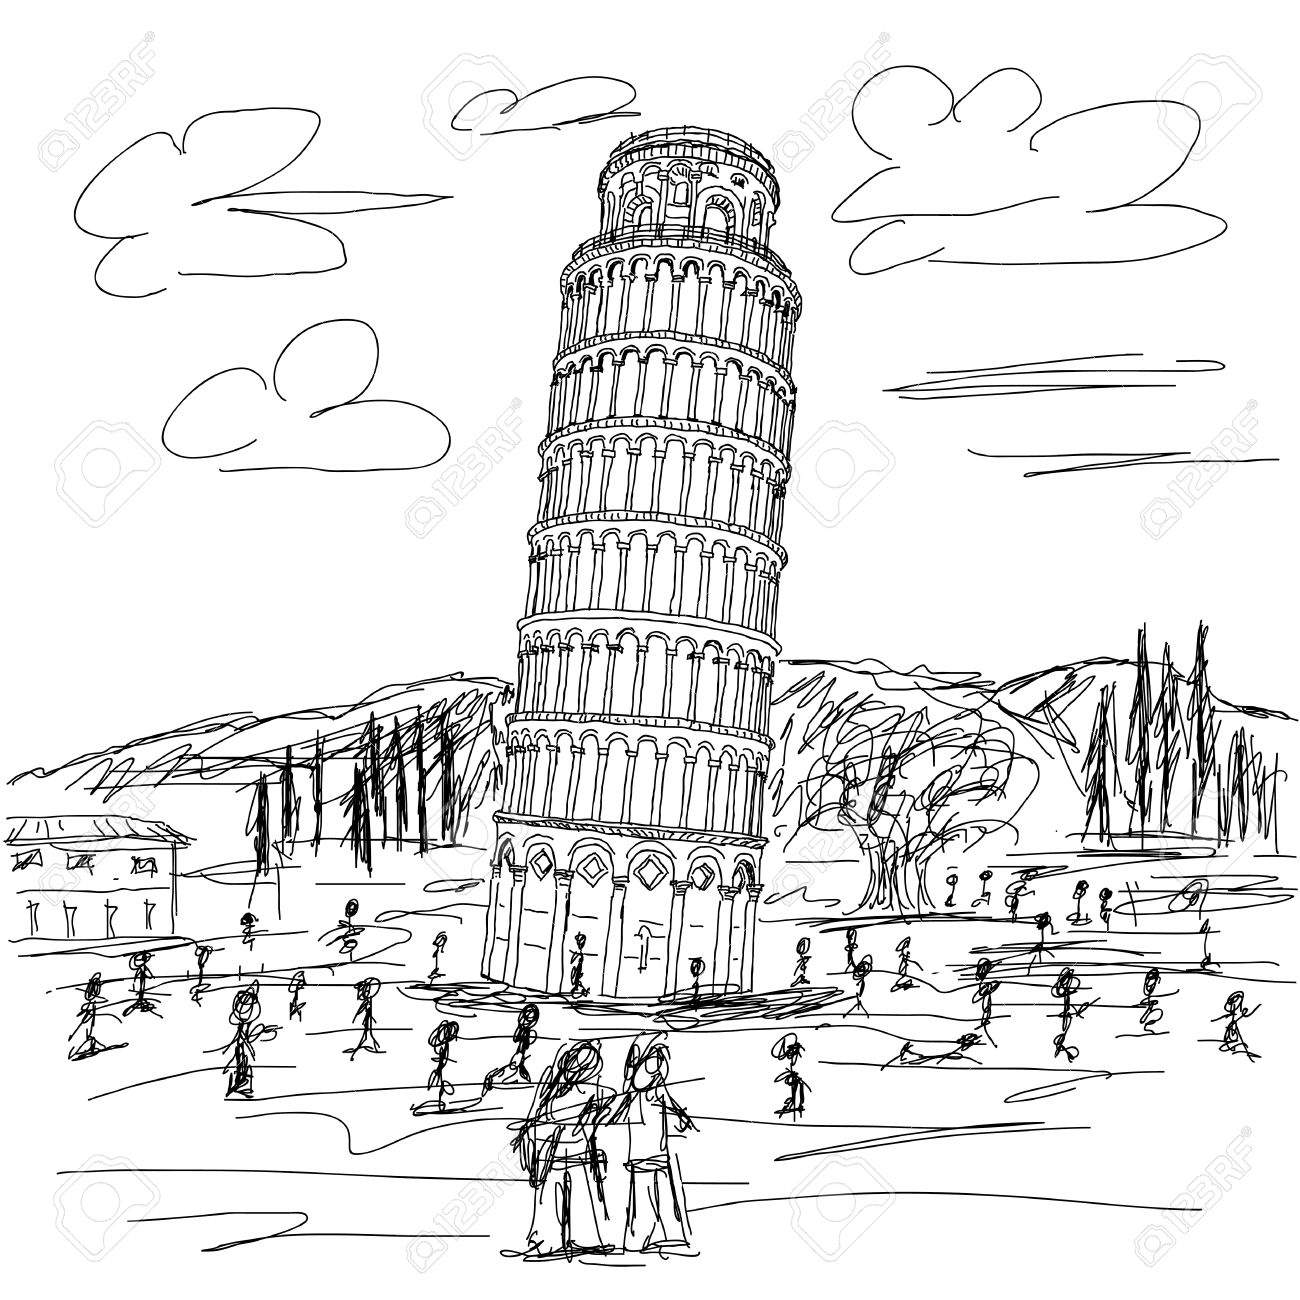 how to draw the leaning tower of pisa leaning tower pisa stock illustrations 1828 leaning draw to pisa leaning the of how tower